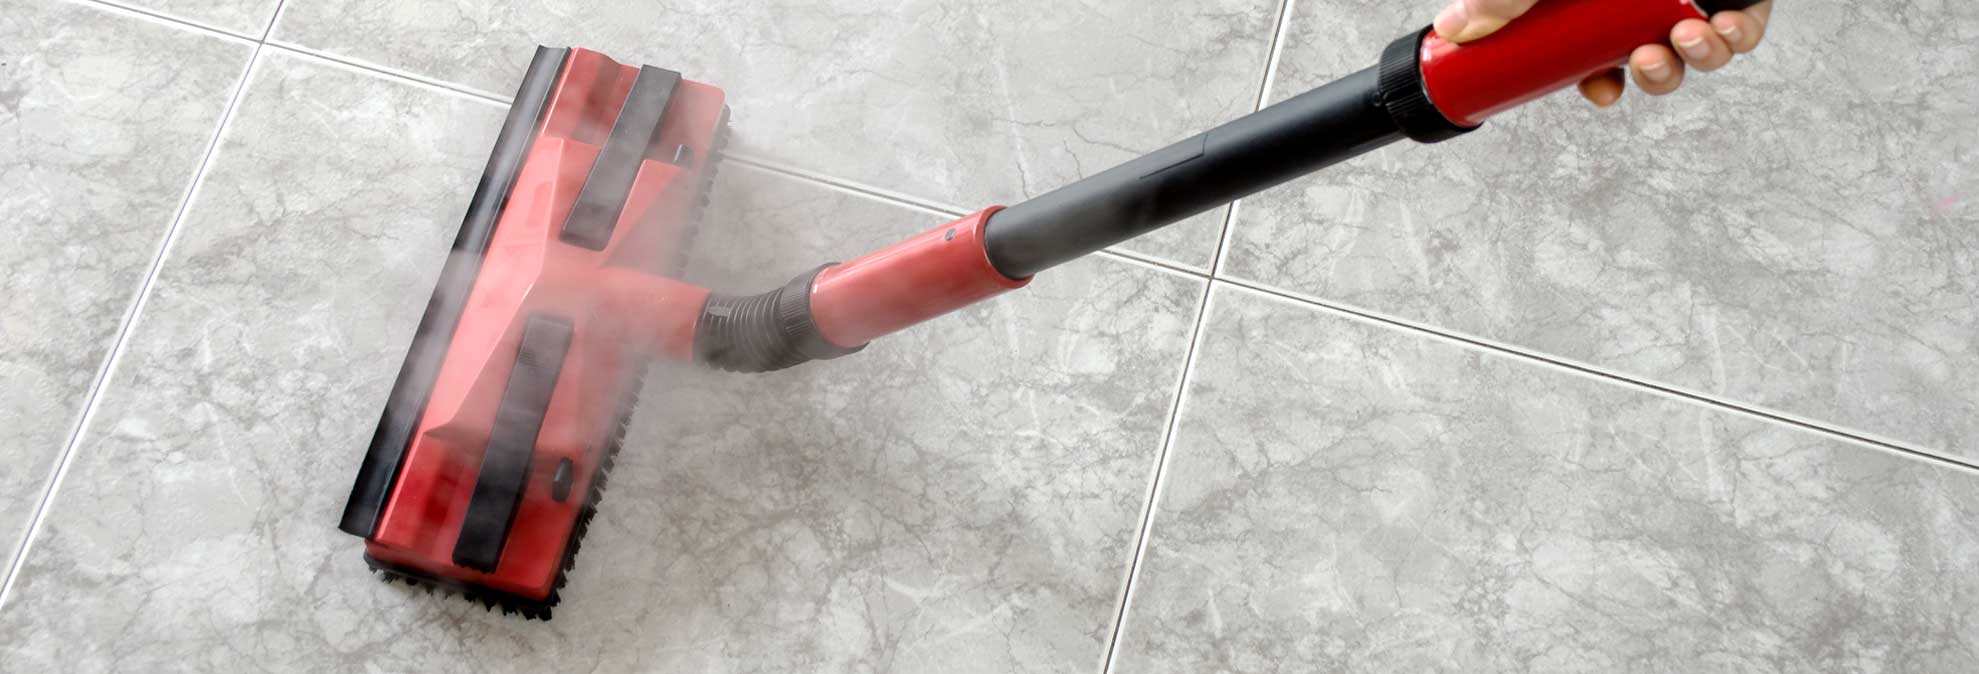 Best Steam Mop Buying Guide - Consumer Reports